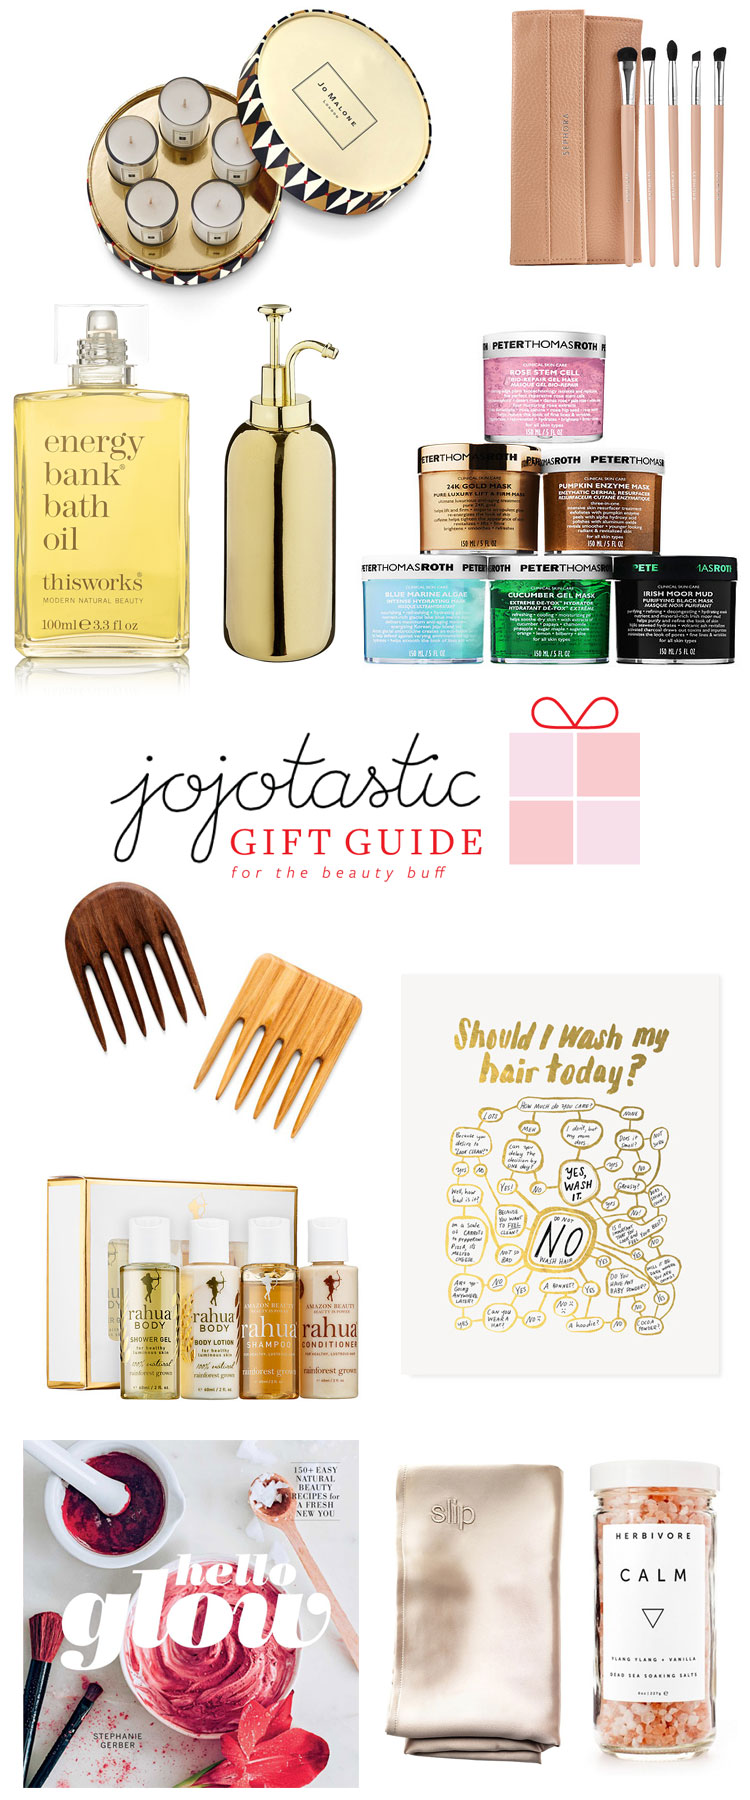 Ultimate Gift Guide: for the beauty buff! Over 30 unique gift ideas and stocking stuffers — get the full guide on Jojotastic.com